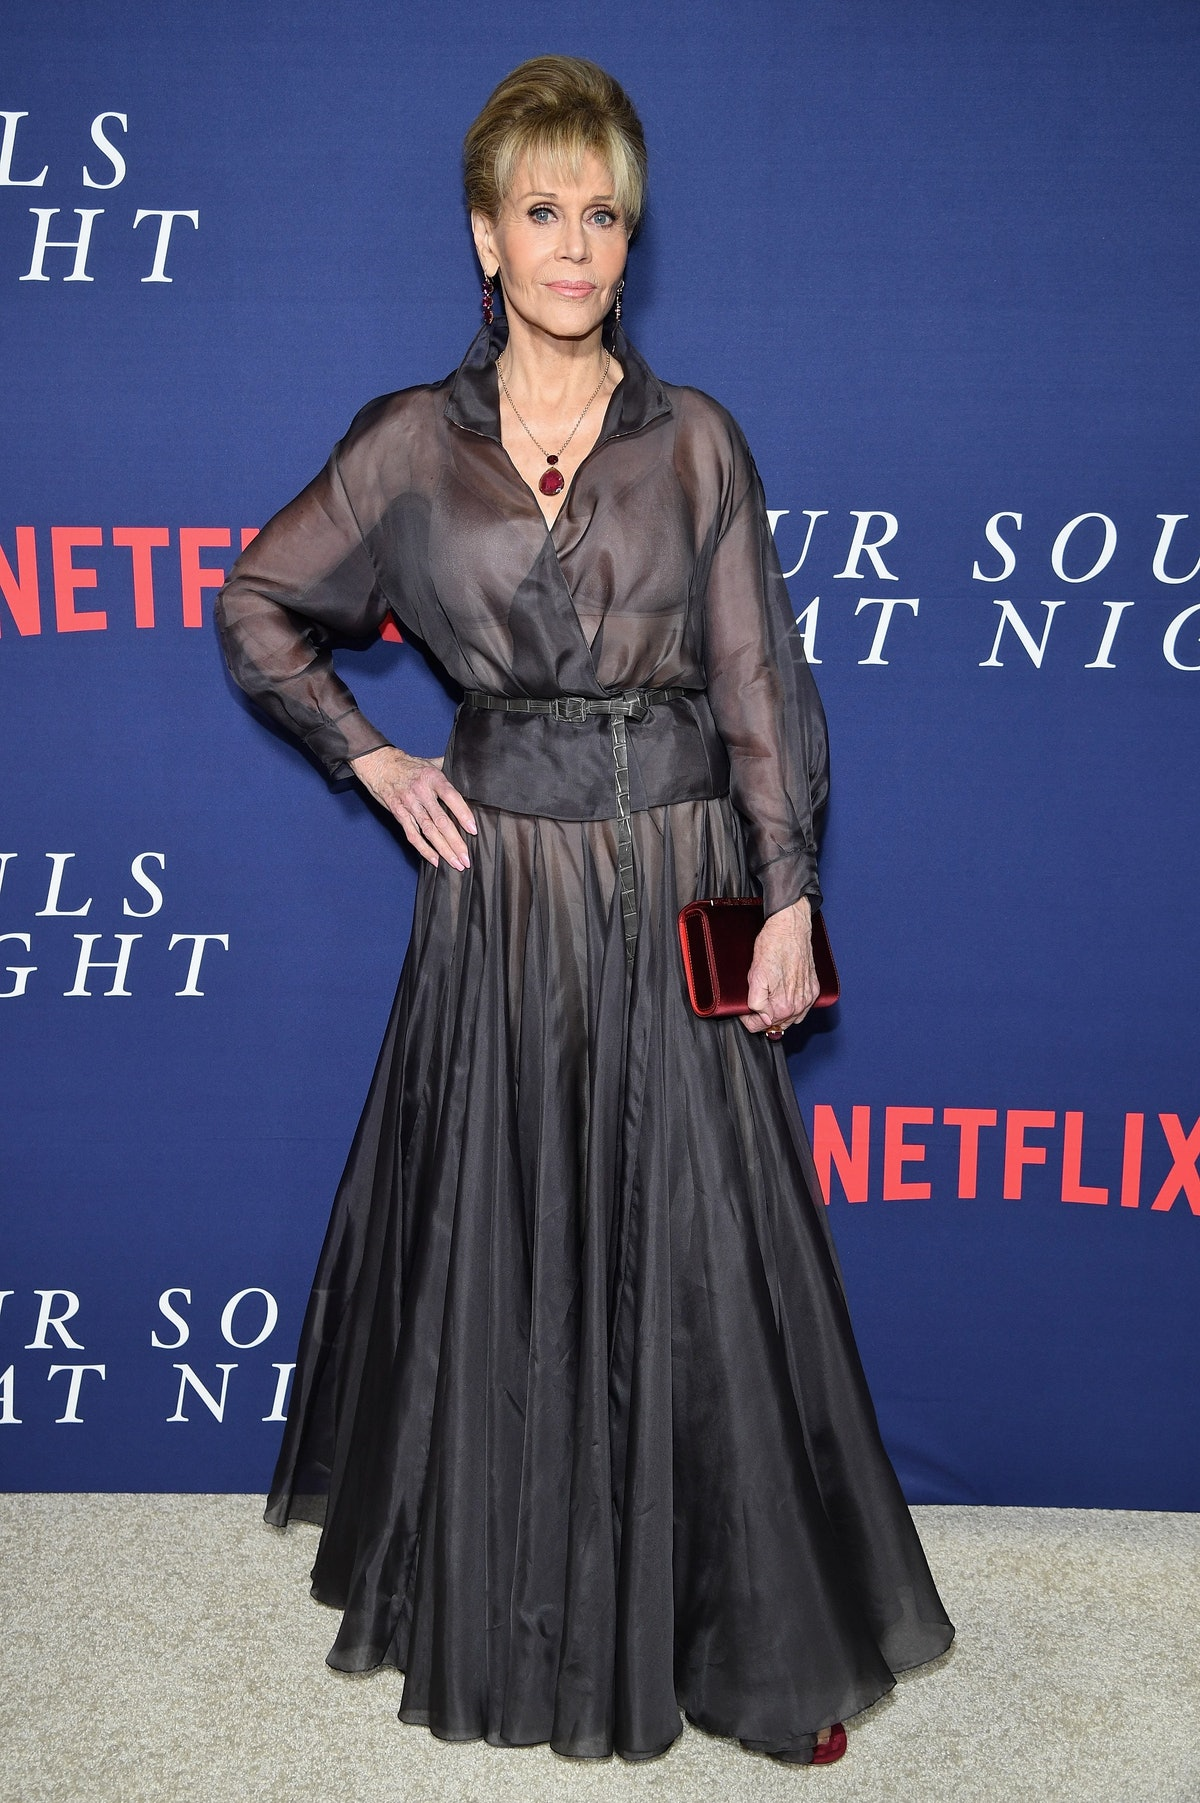 """Netflix Hosts The New York Premiere Of """"Our Souls At Night"""" - Arrivals"""